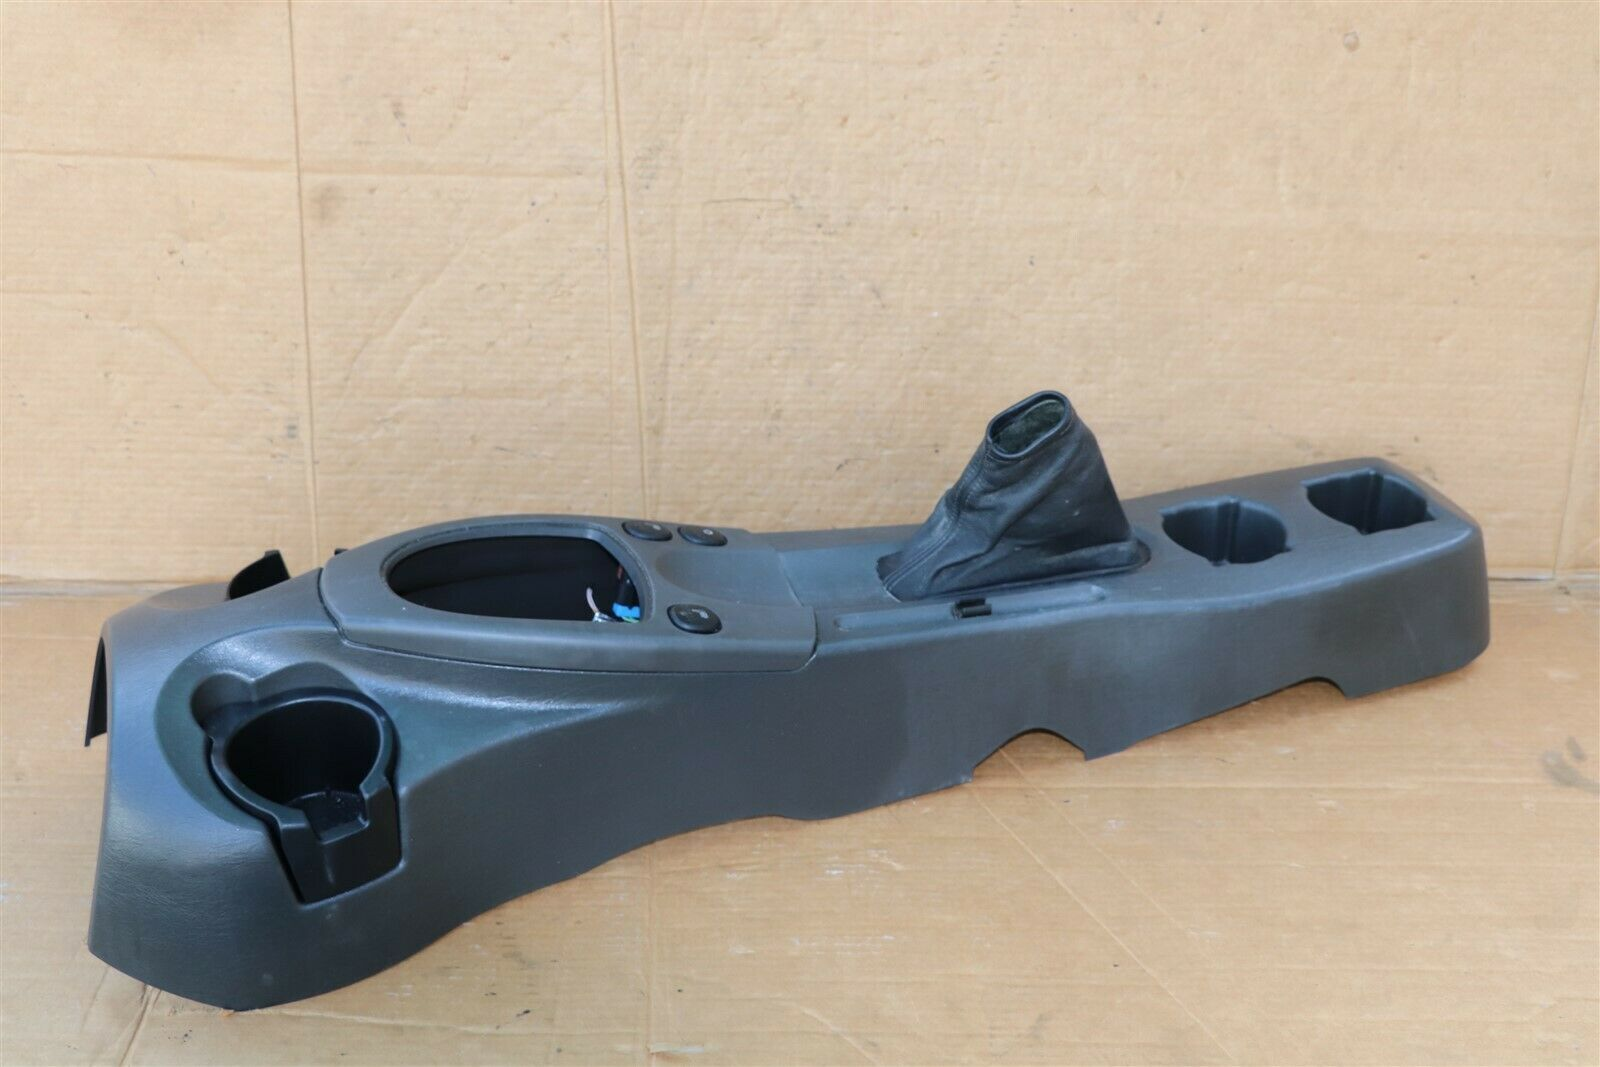 03 Ford Focus Svt St170 Center Console Shifter Surround & Cup Holders